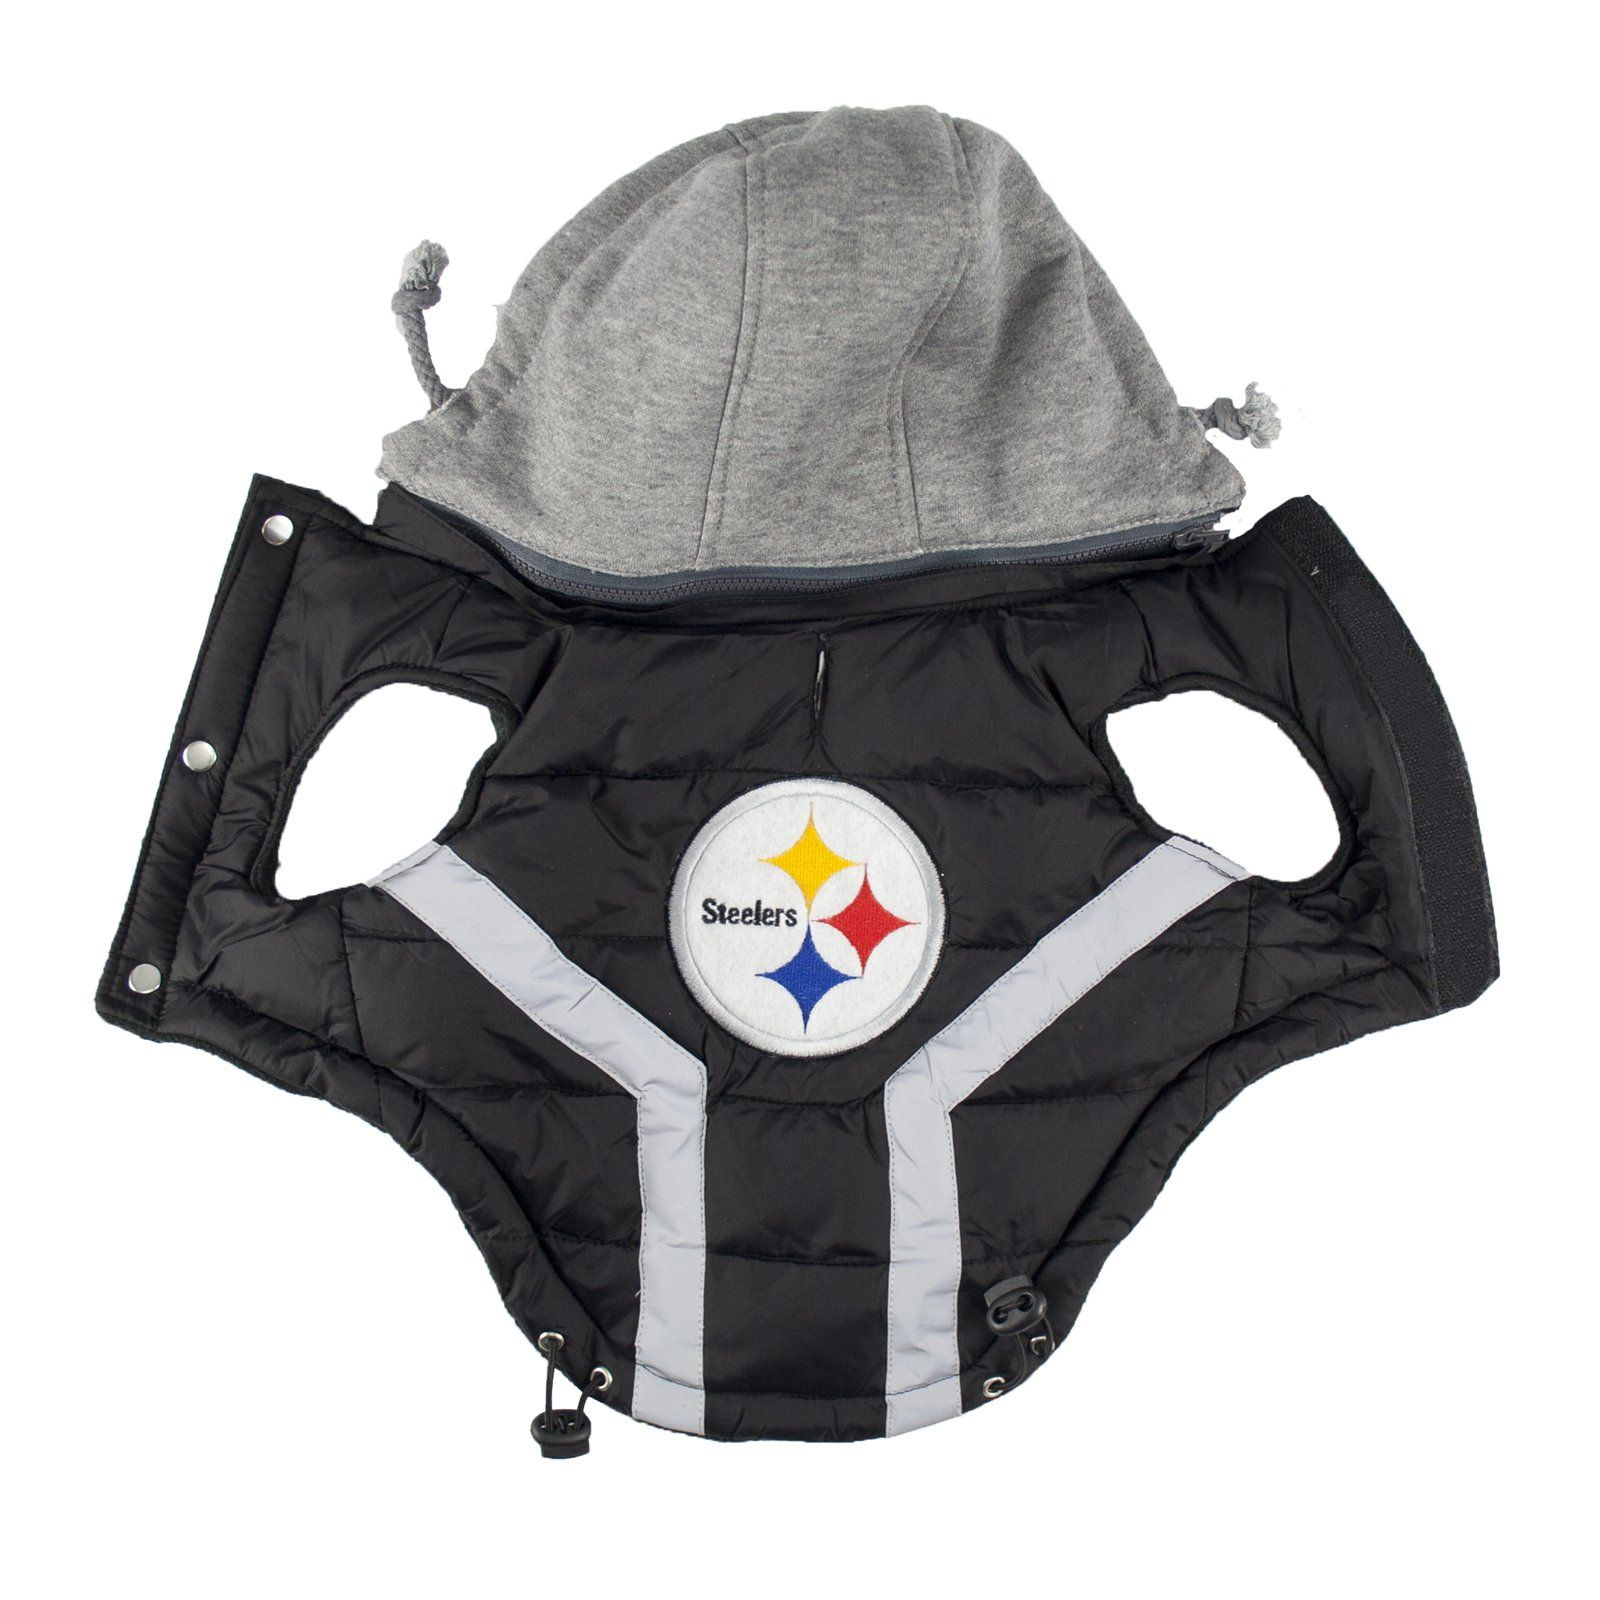 5dca8eac91f NFL Pittsburgh Steelers Dog Puffer Vest Small >>> Learn more at the picture  link. (This is an affiliate link). #dogcostumes